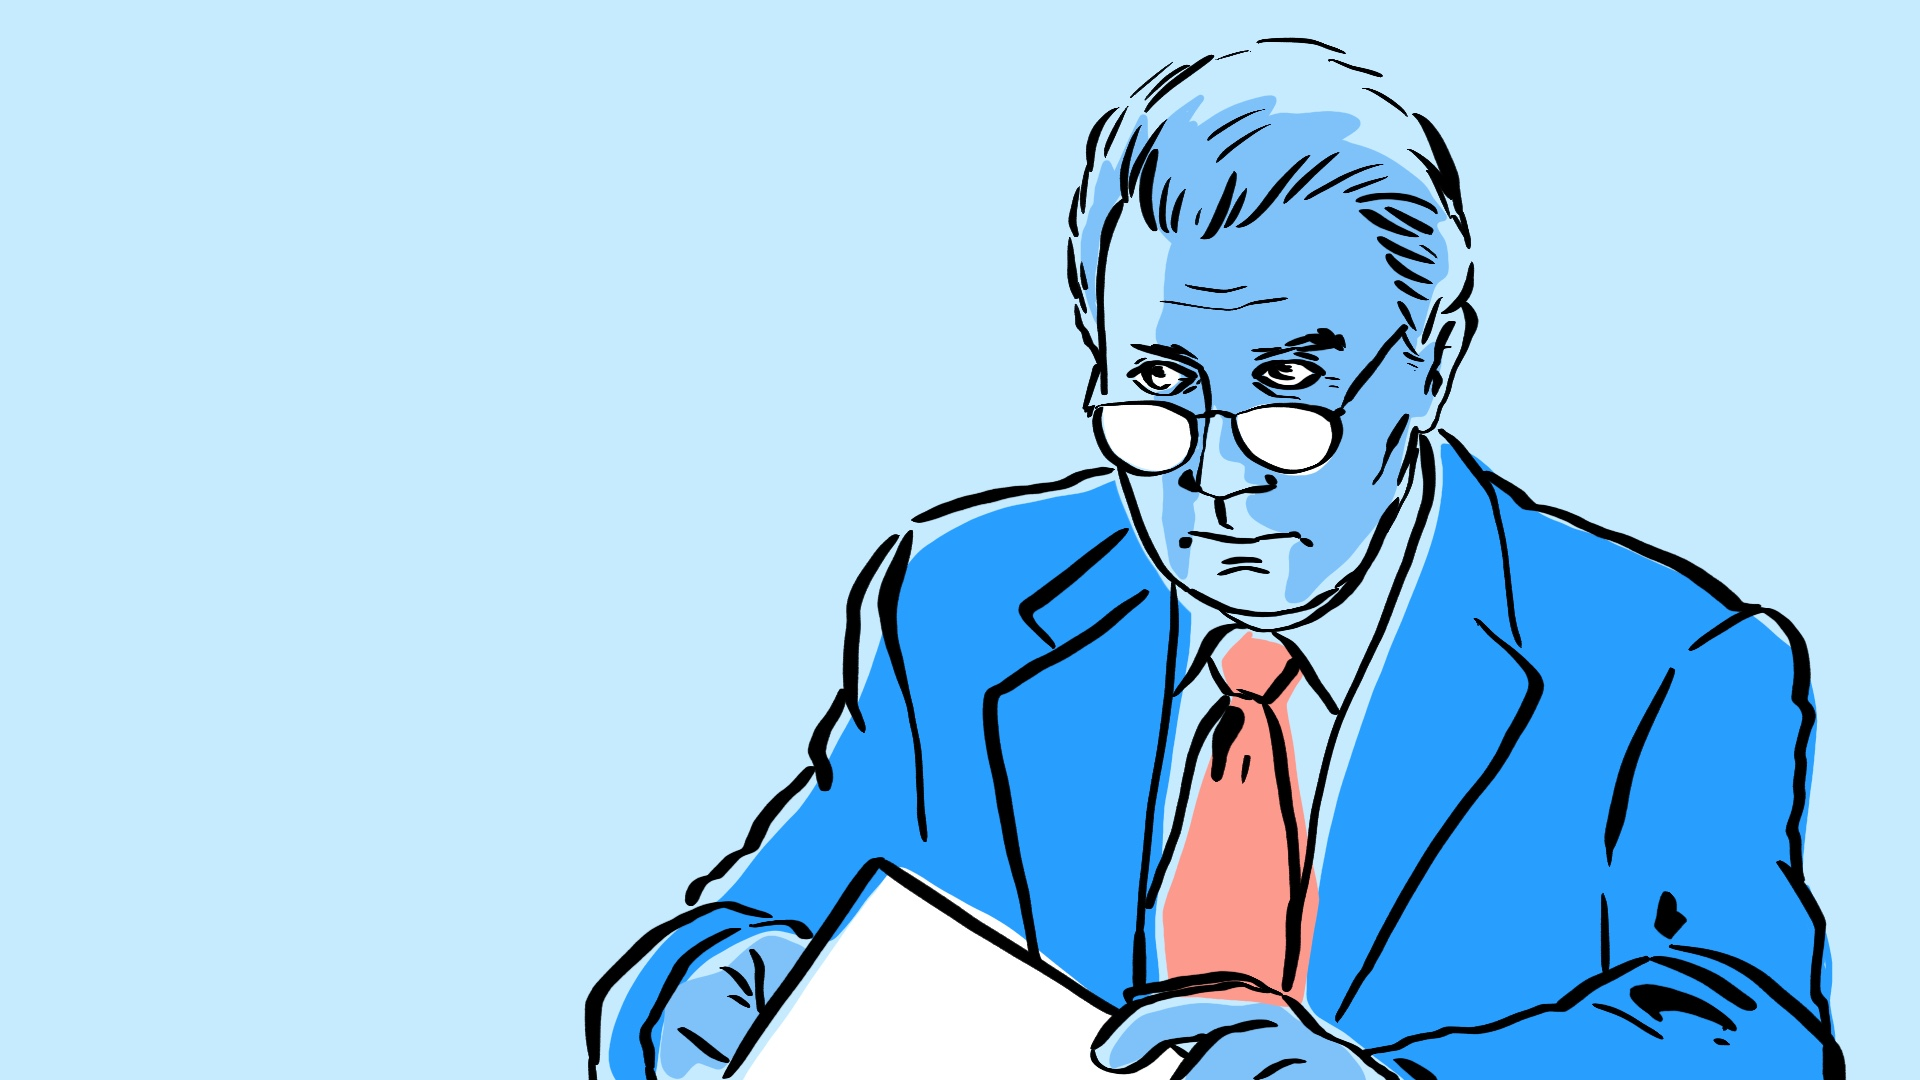 Illustration of Jed Bartlet from The West Wing television show